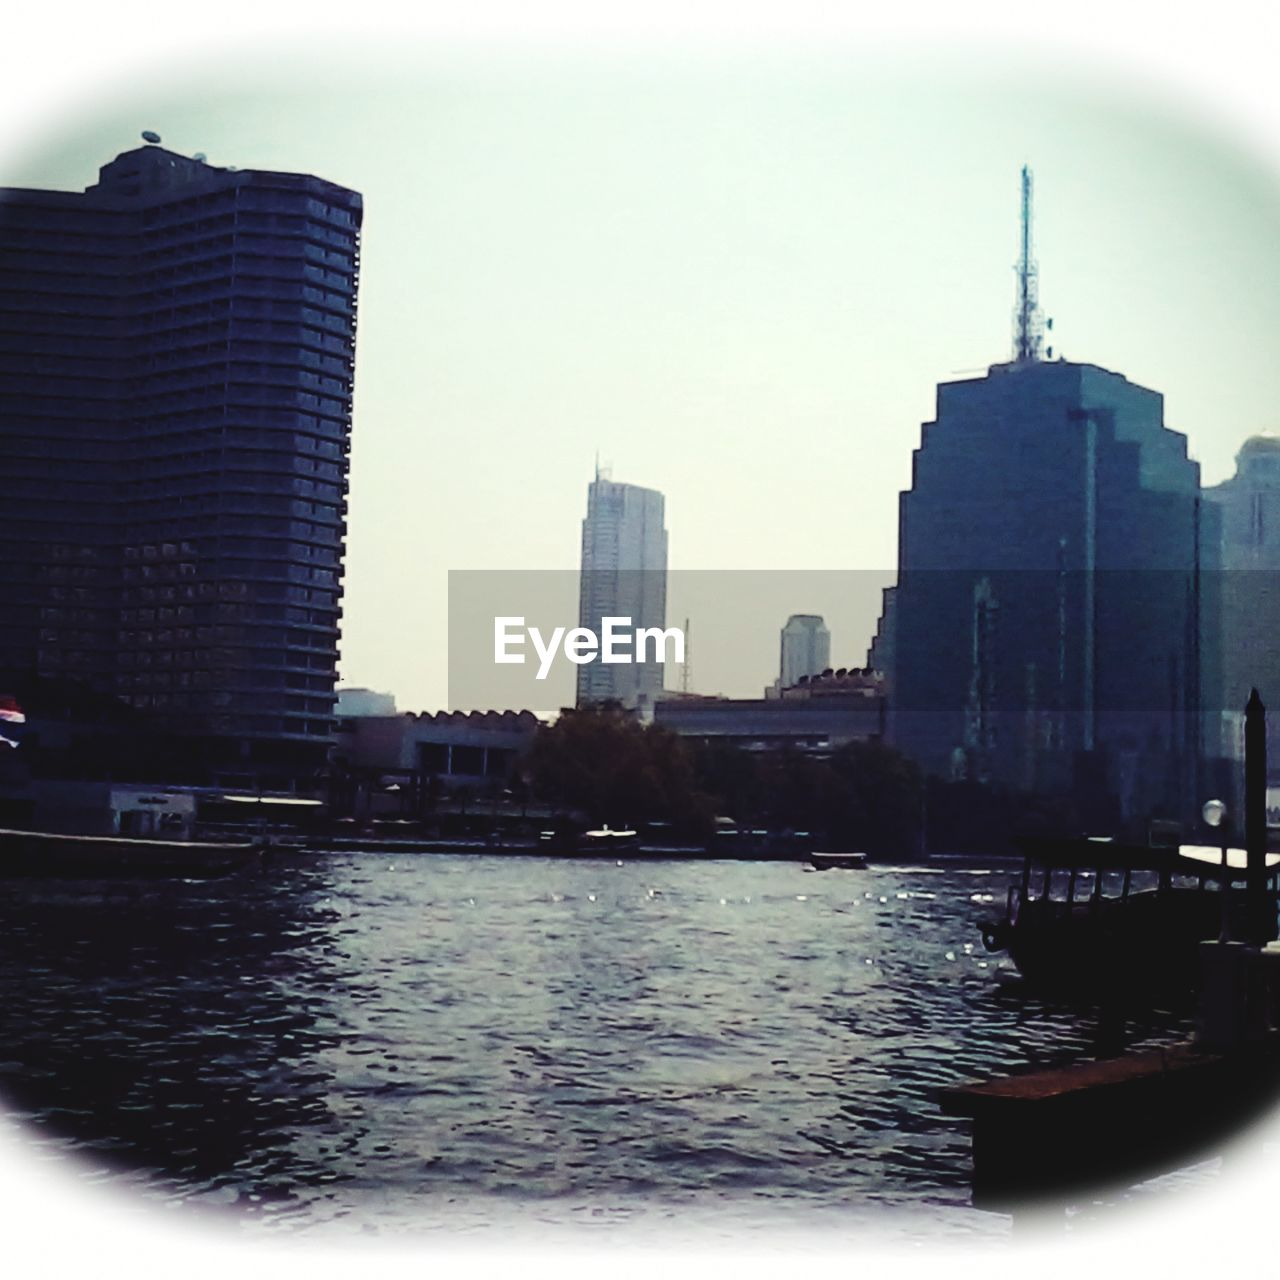 architecture, city, building exterior, skyscraper, built structure, modern, tower, river, cityscape, water, skyline, development, waterfront, city life, no people, travel destinations, downtown district, outdoors, urban skyline, tall, sky, day, high